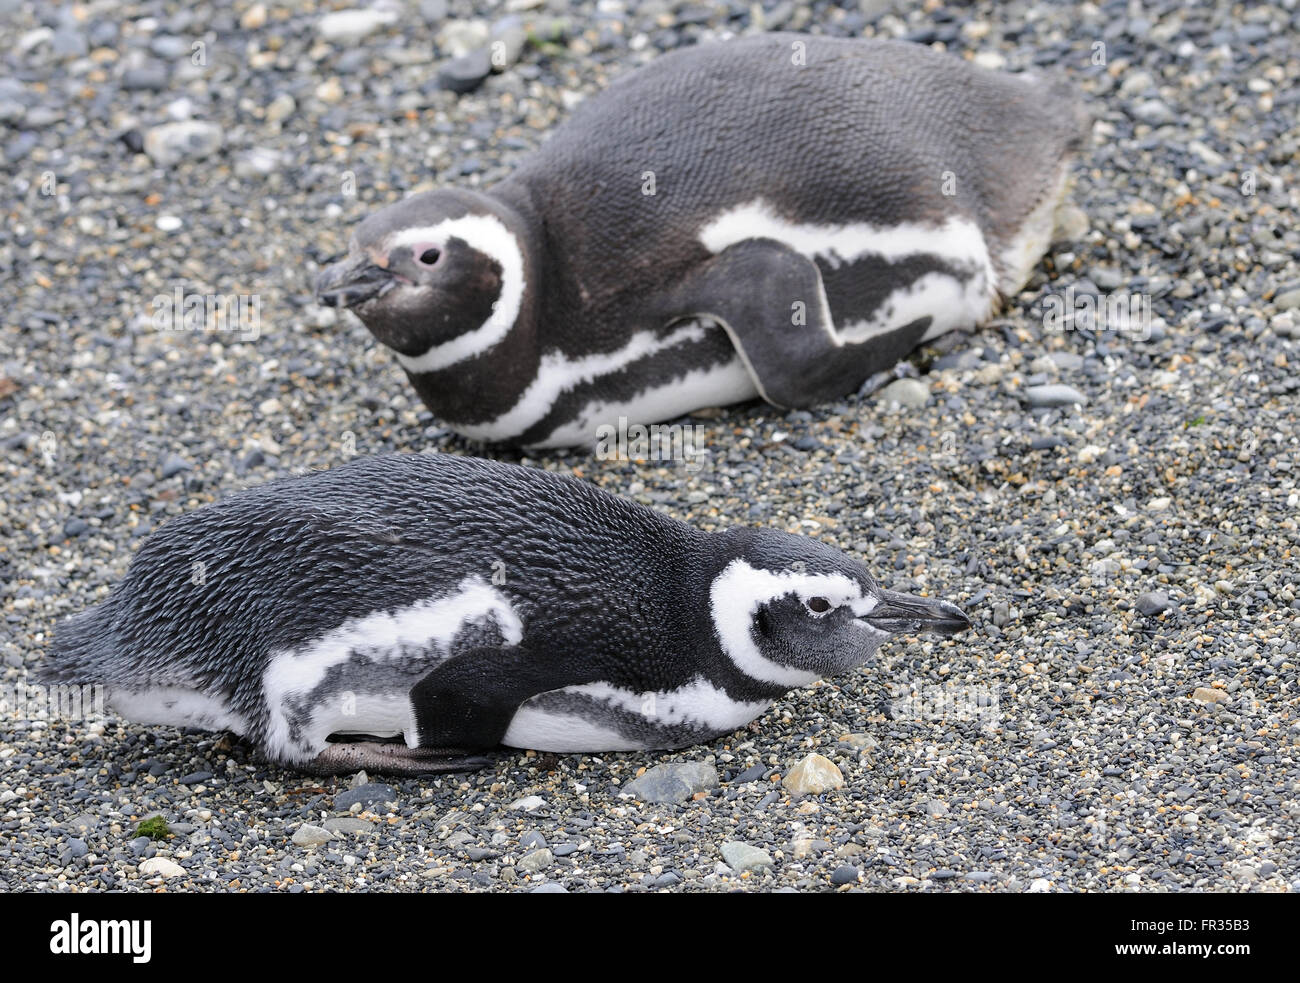 Magellanic Penguins (Spheniscus magellanicus) resting at their breeding colony on Isla Martillo in the Beagle Channel. - Stock Image